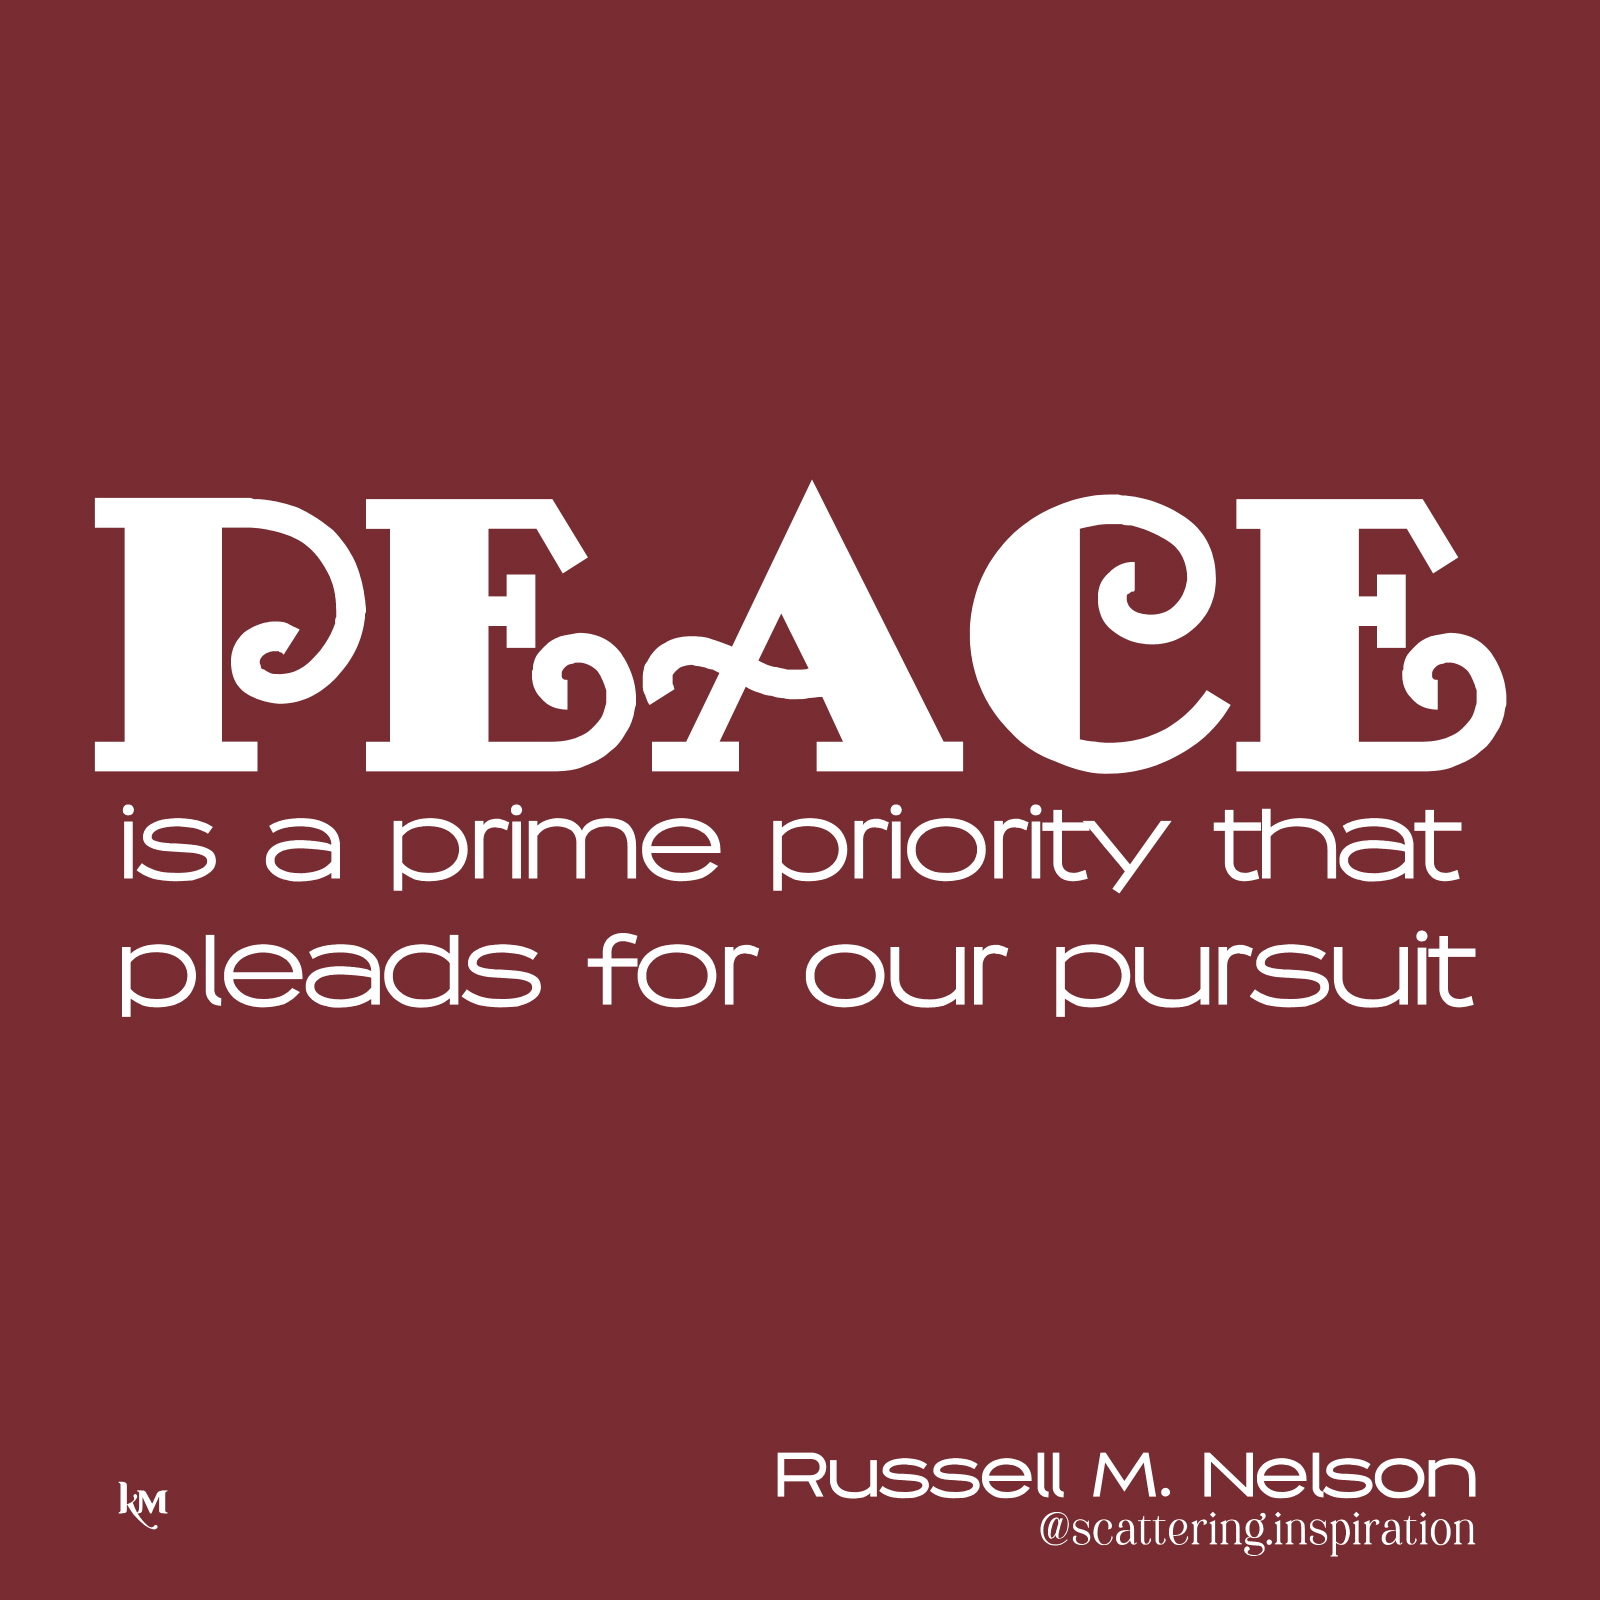 peace is priority